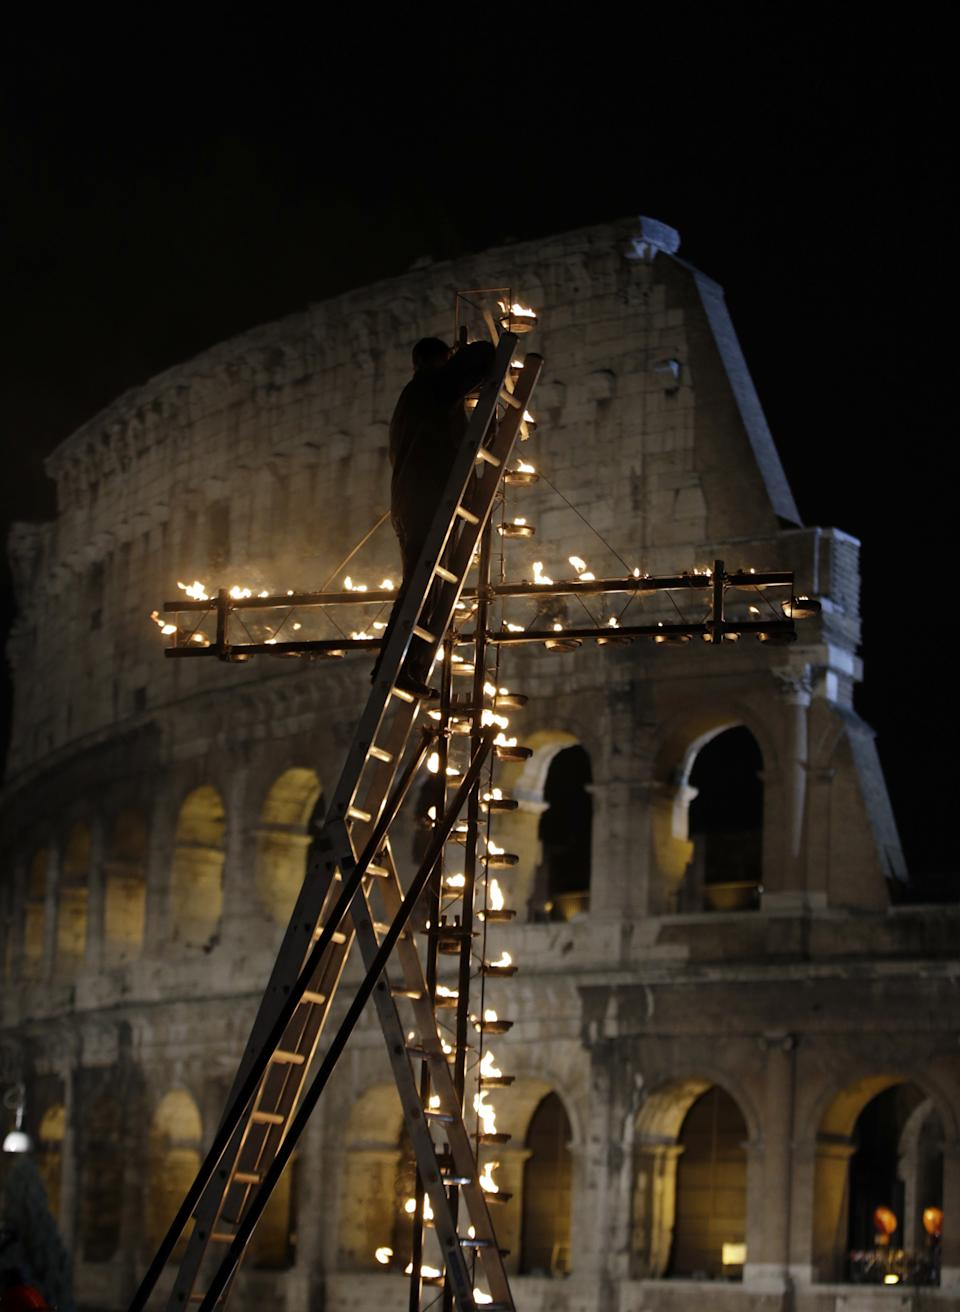 A worker adjusts a giant torch lit cross overlooking the ancient Colosseum prior to the start of the Via Crucis (Way of the Cross) torchlight procession which will be celebrated by Pope Francis, on Good Friday, in Rome, Friday, March 29, 2013.  (AP Photo/Andrew Medichini)